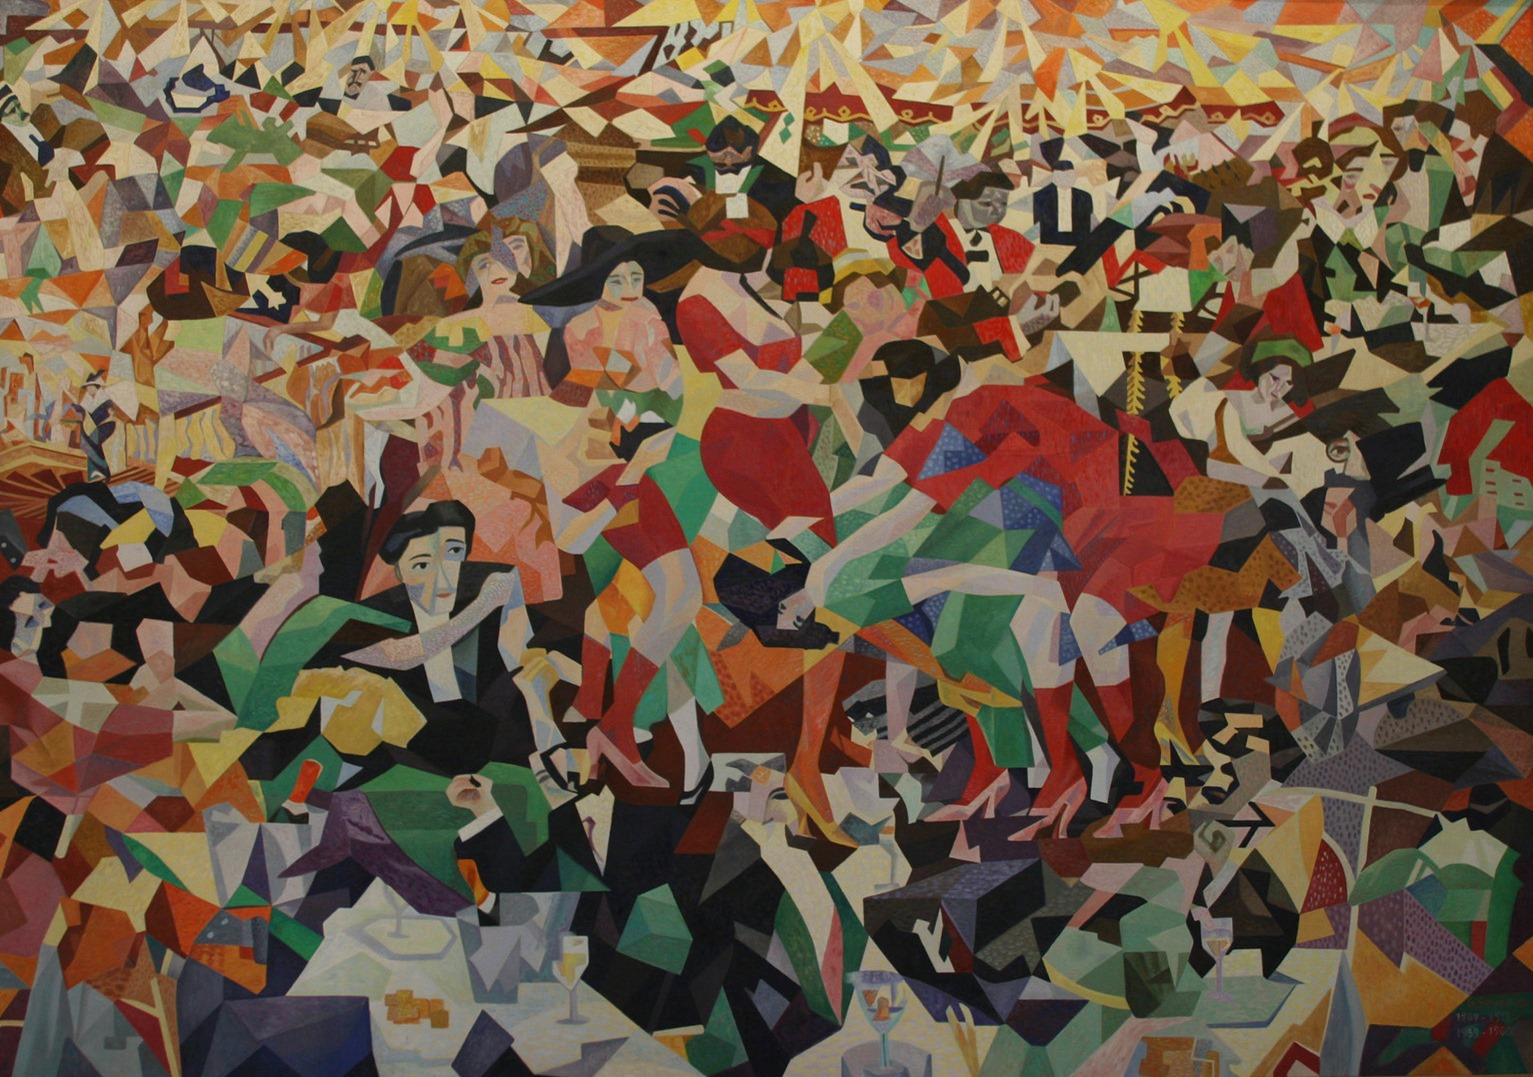 Gino Severini The Pan Pan at the Monico, 1959